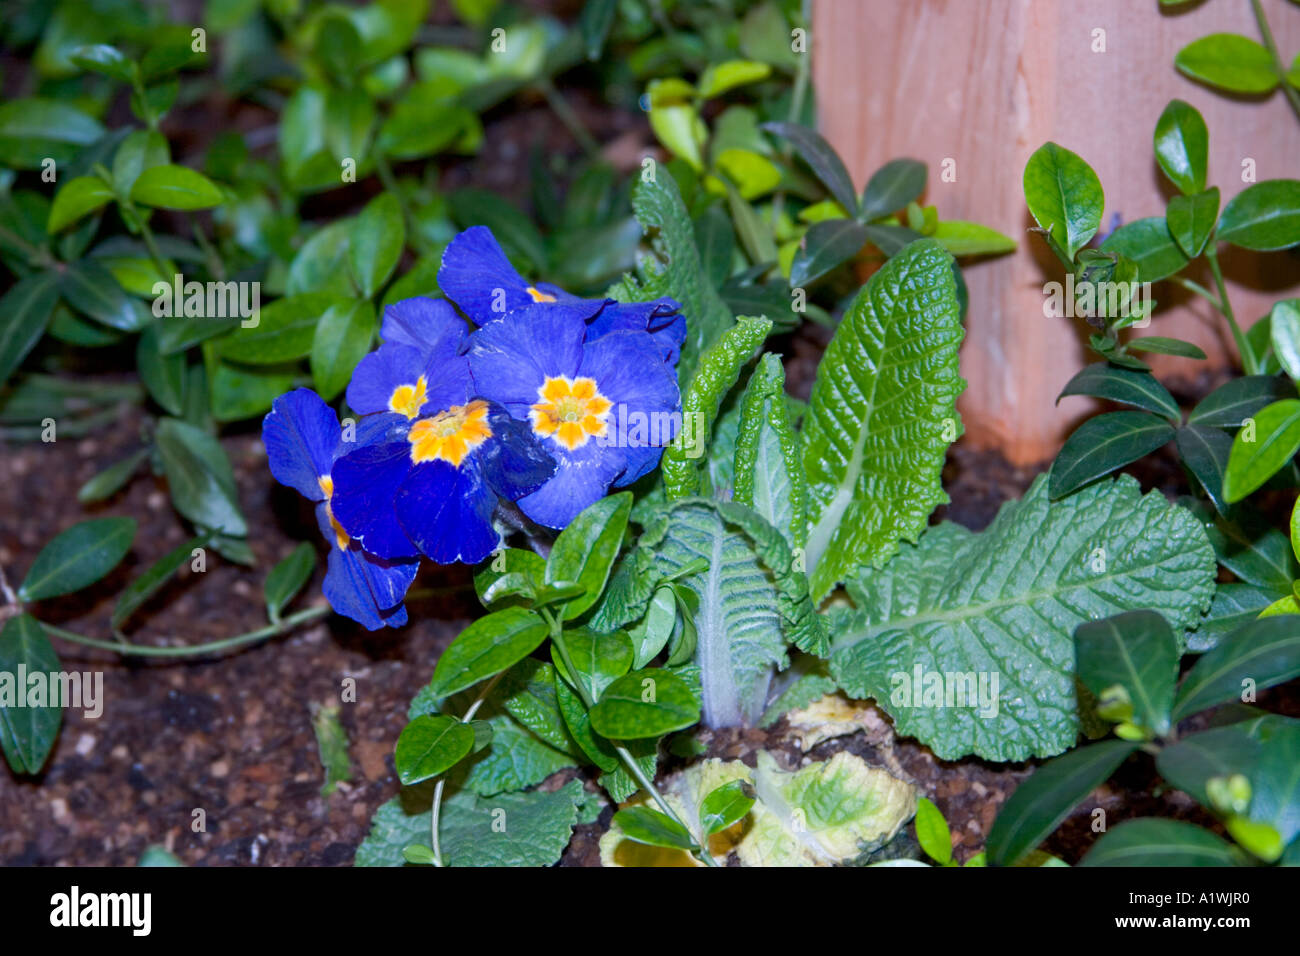 blue flowers with blue